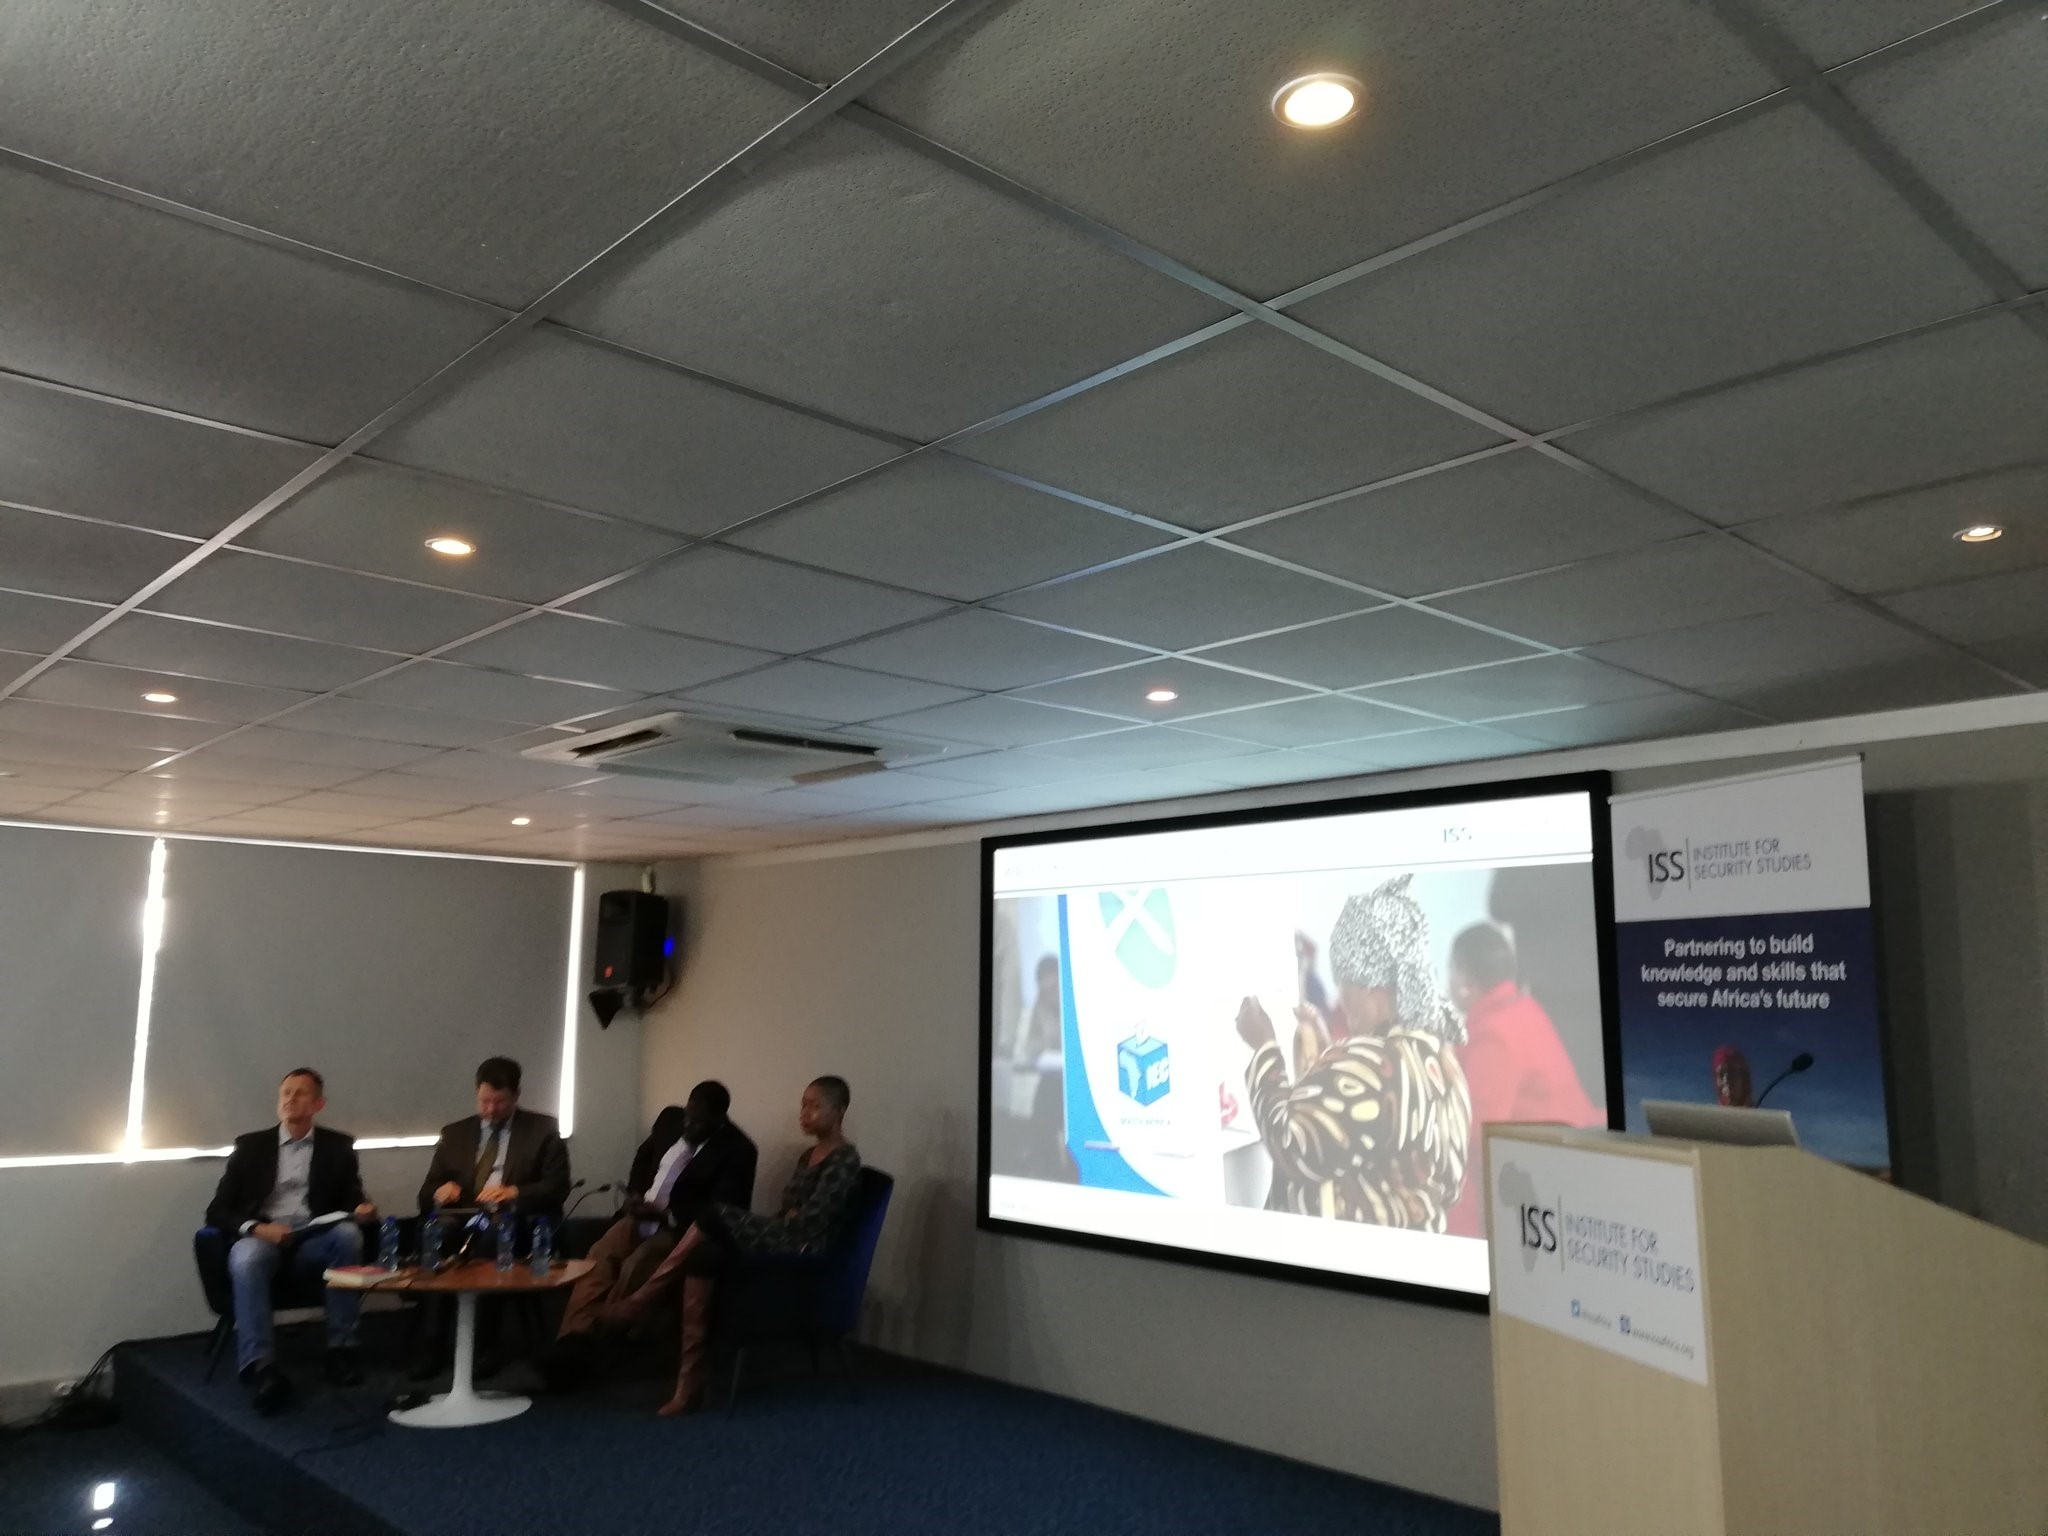 SALO attending @issafrica event on 2019 elections in SA. – April 2019